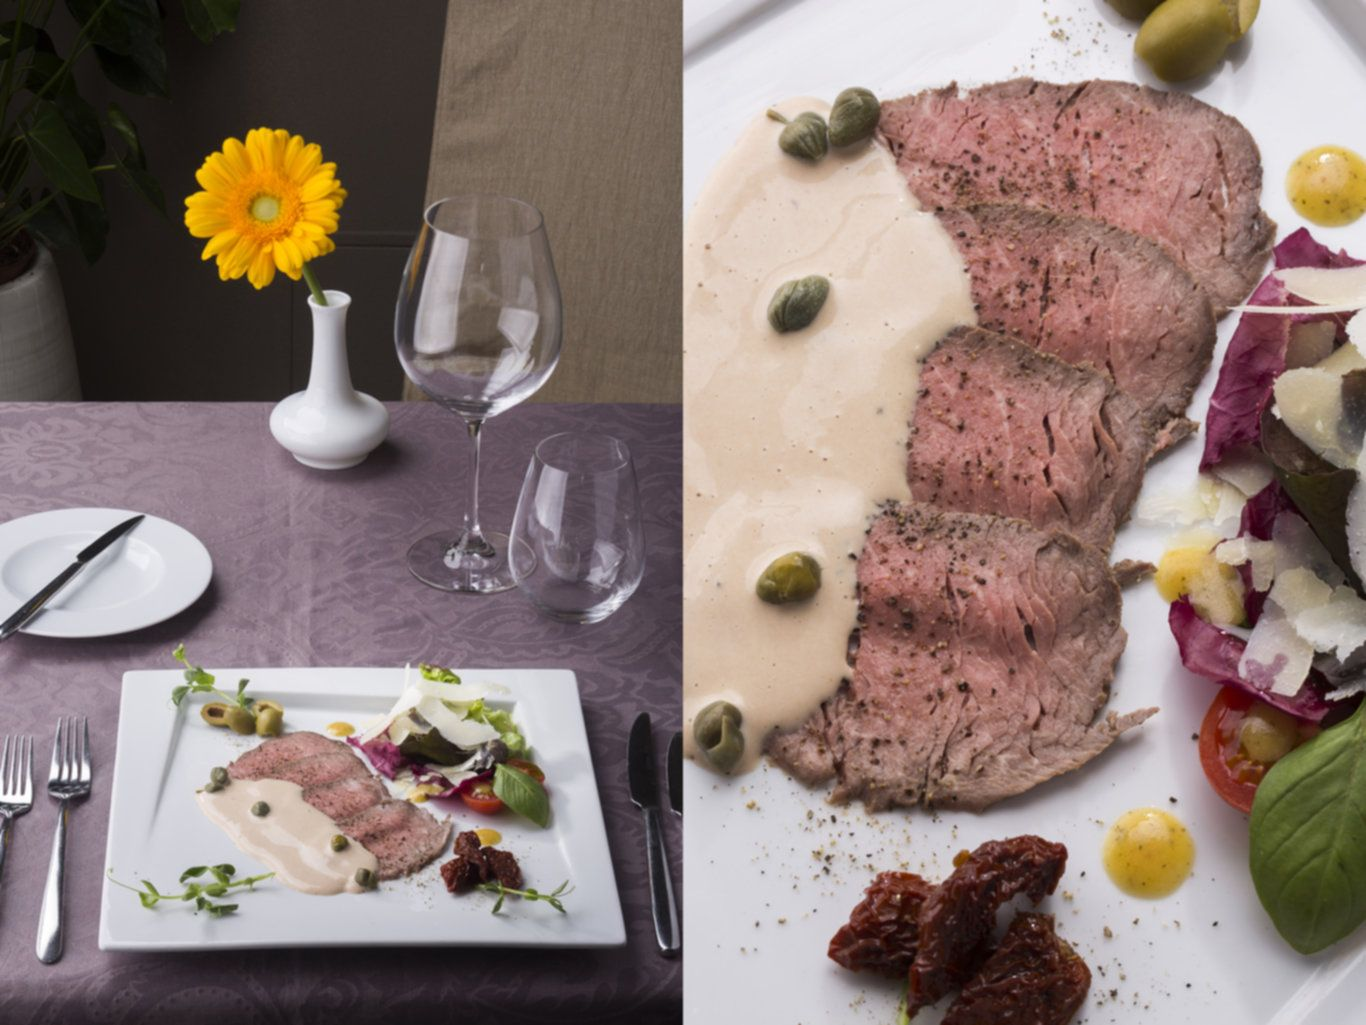 Exclusive 3 course lunch menu in resturant Mix 15 €